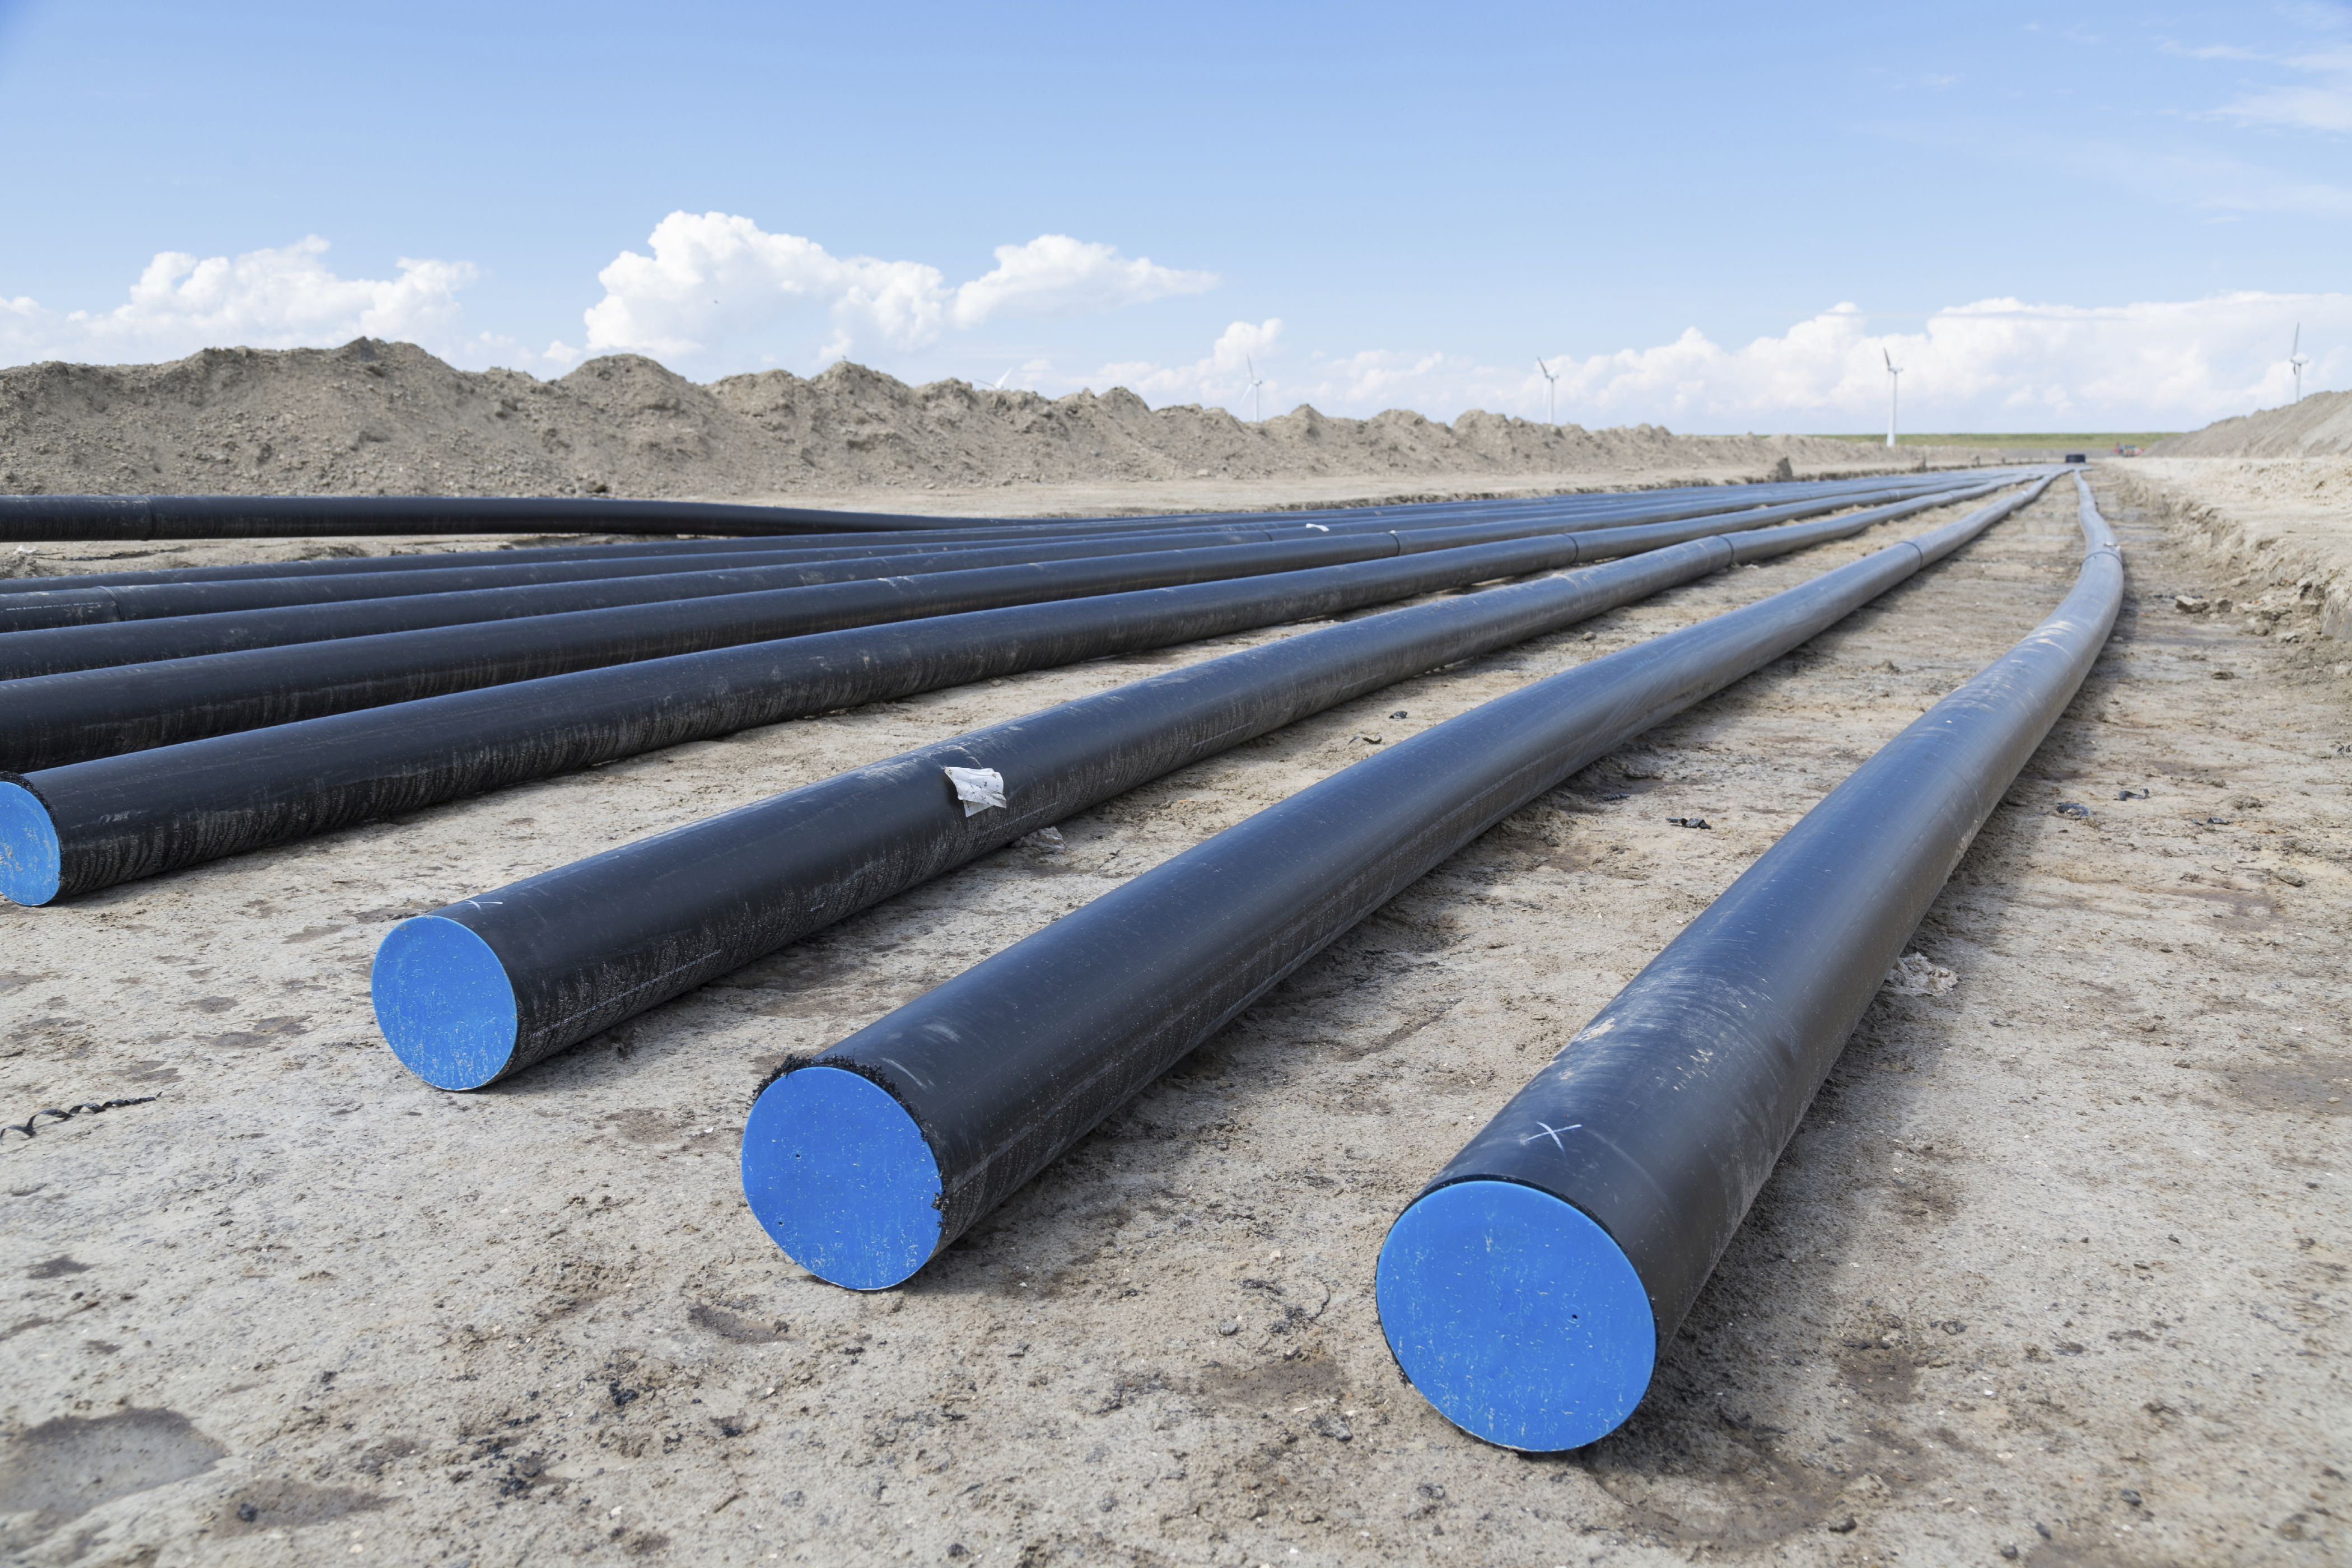 Underground cabling destined to transport electricity from a large scale wind farm